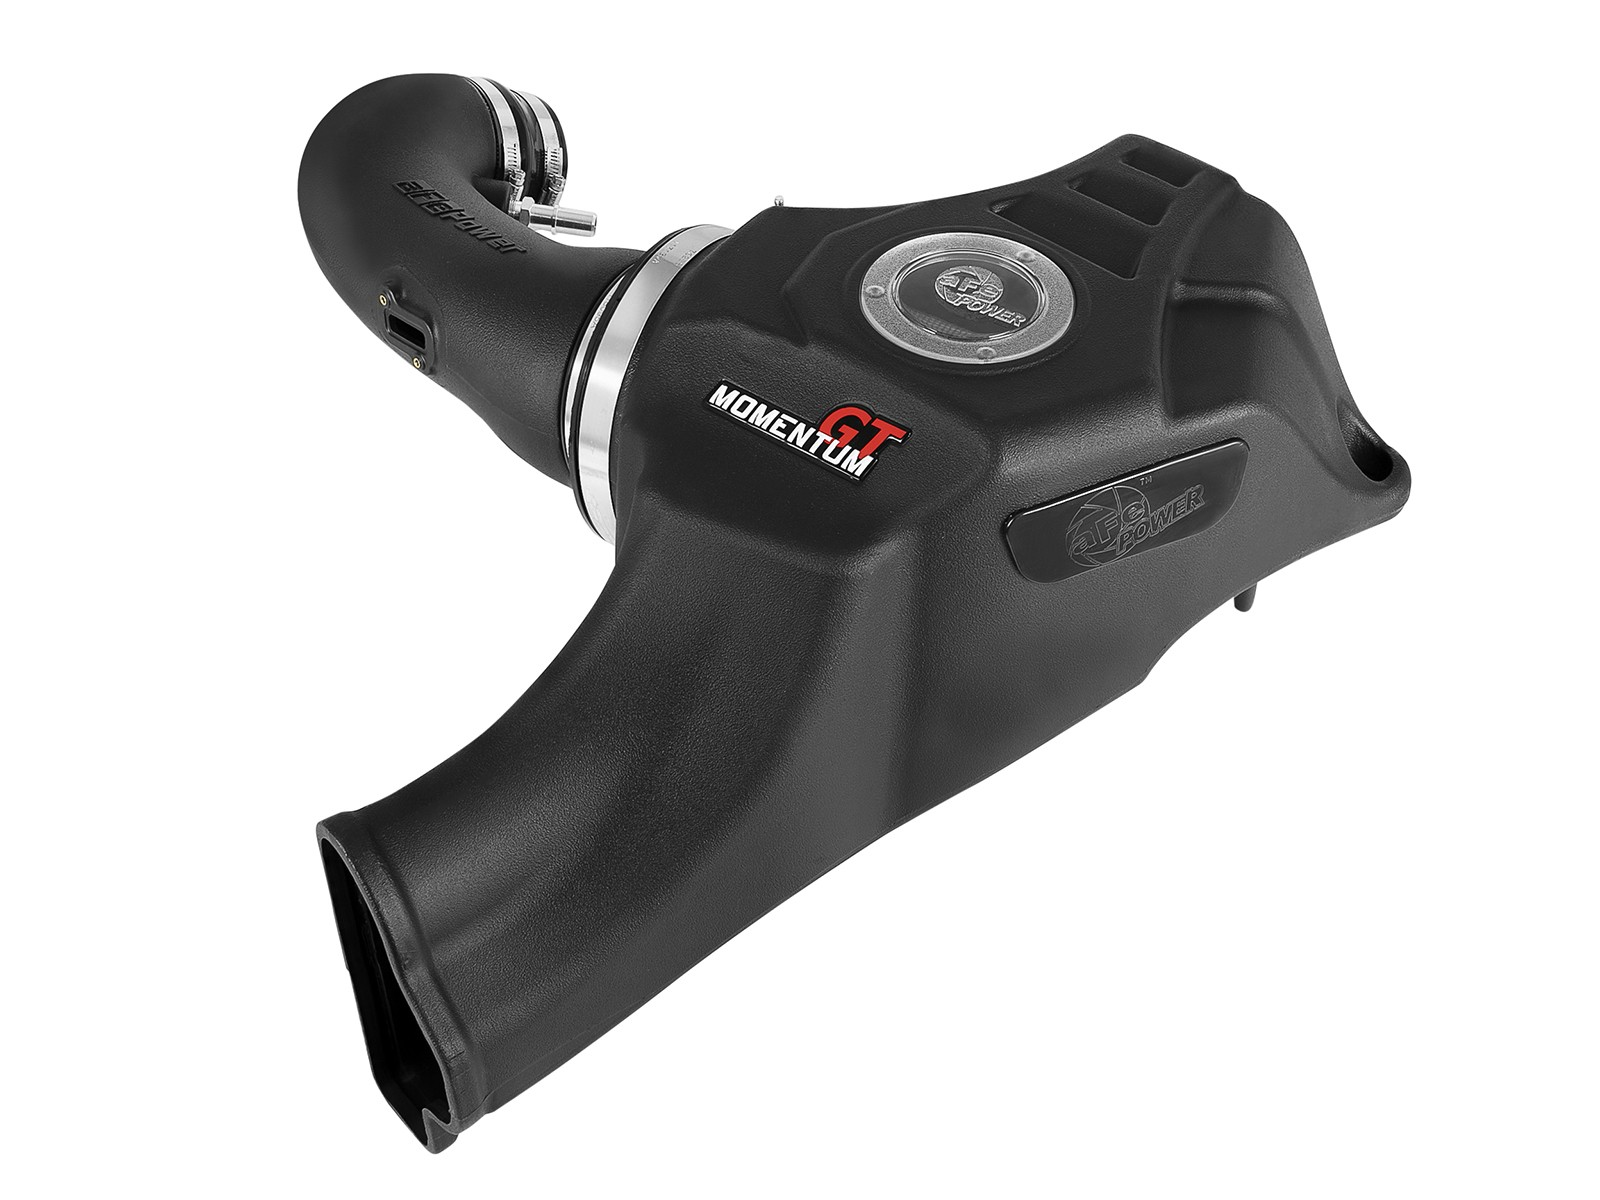 aFe POWER Momentum GT Pro Dry S Cold Air Intake System 18-19 Ford Mustang GT V8-5.0L